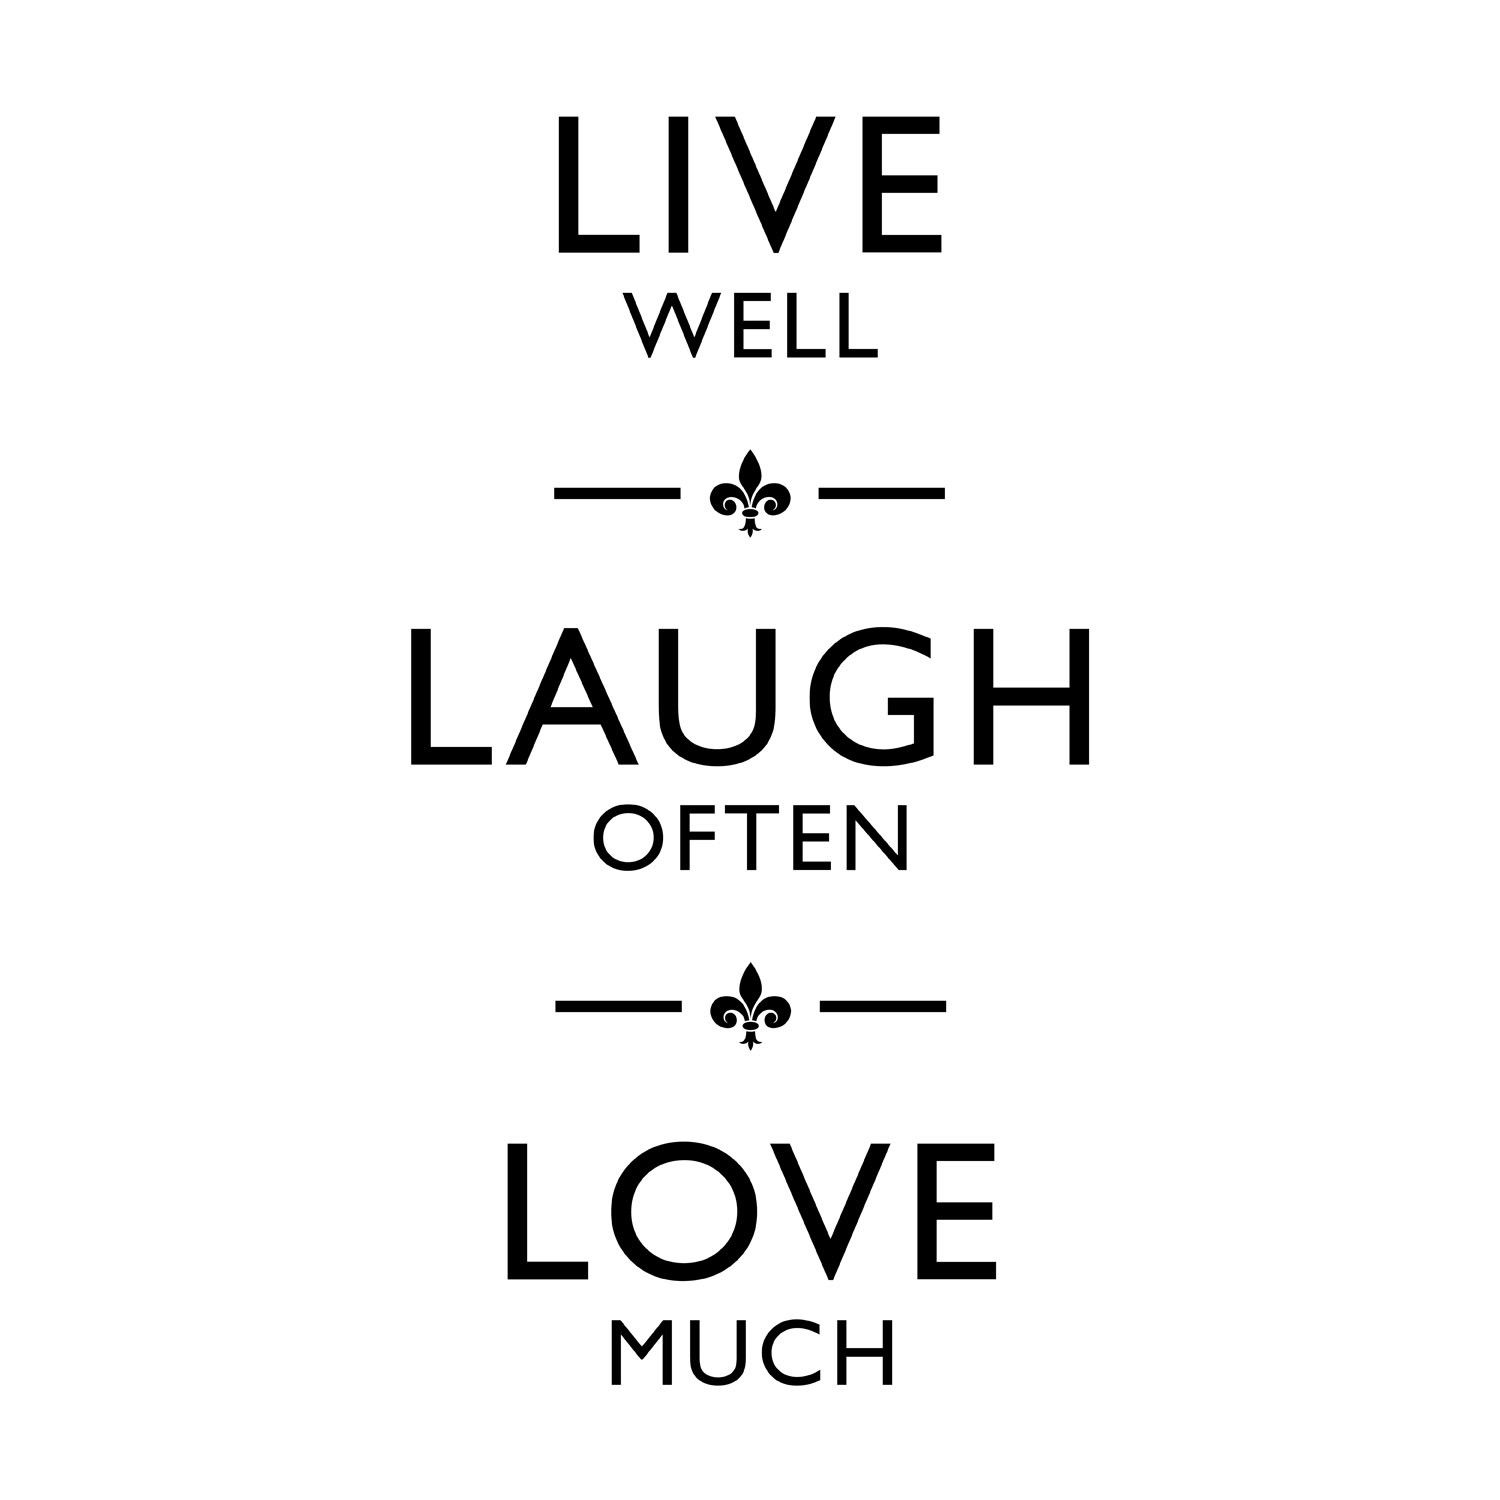 Live Love Laugh Quotes Captivating Love And Laughter Quotes Live Laugh Love Quote Wall  Advice To My